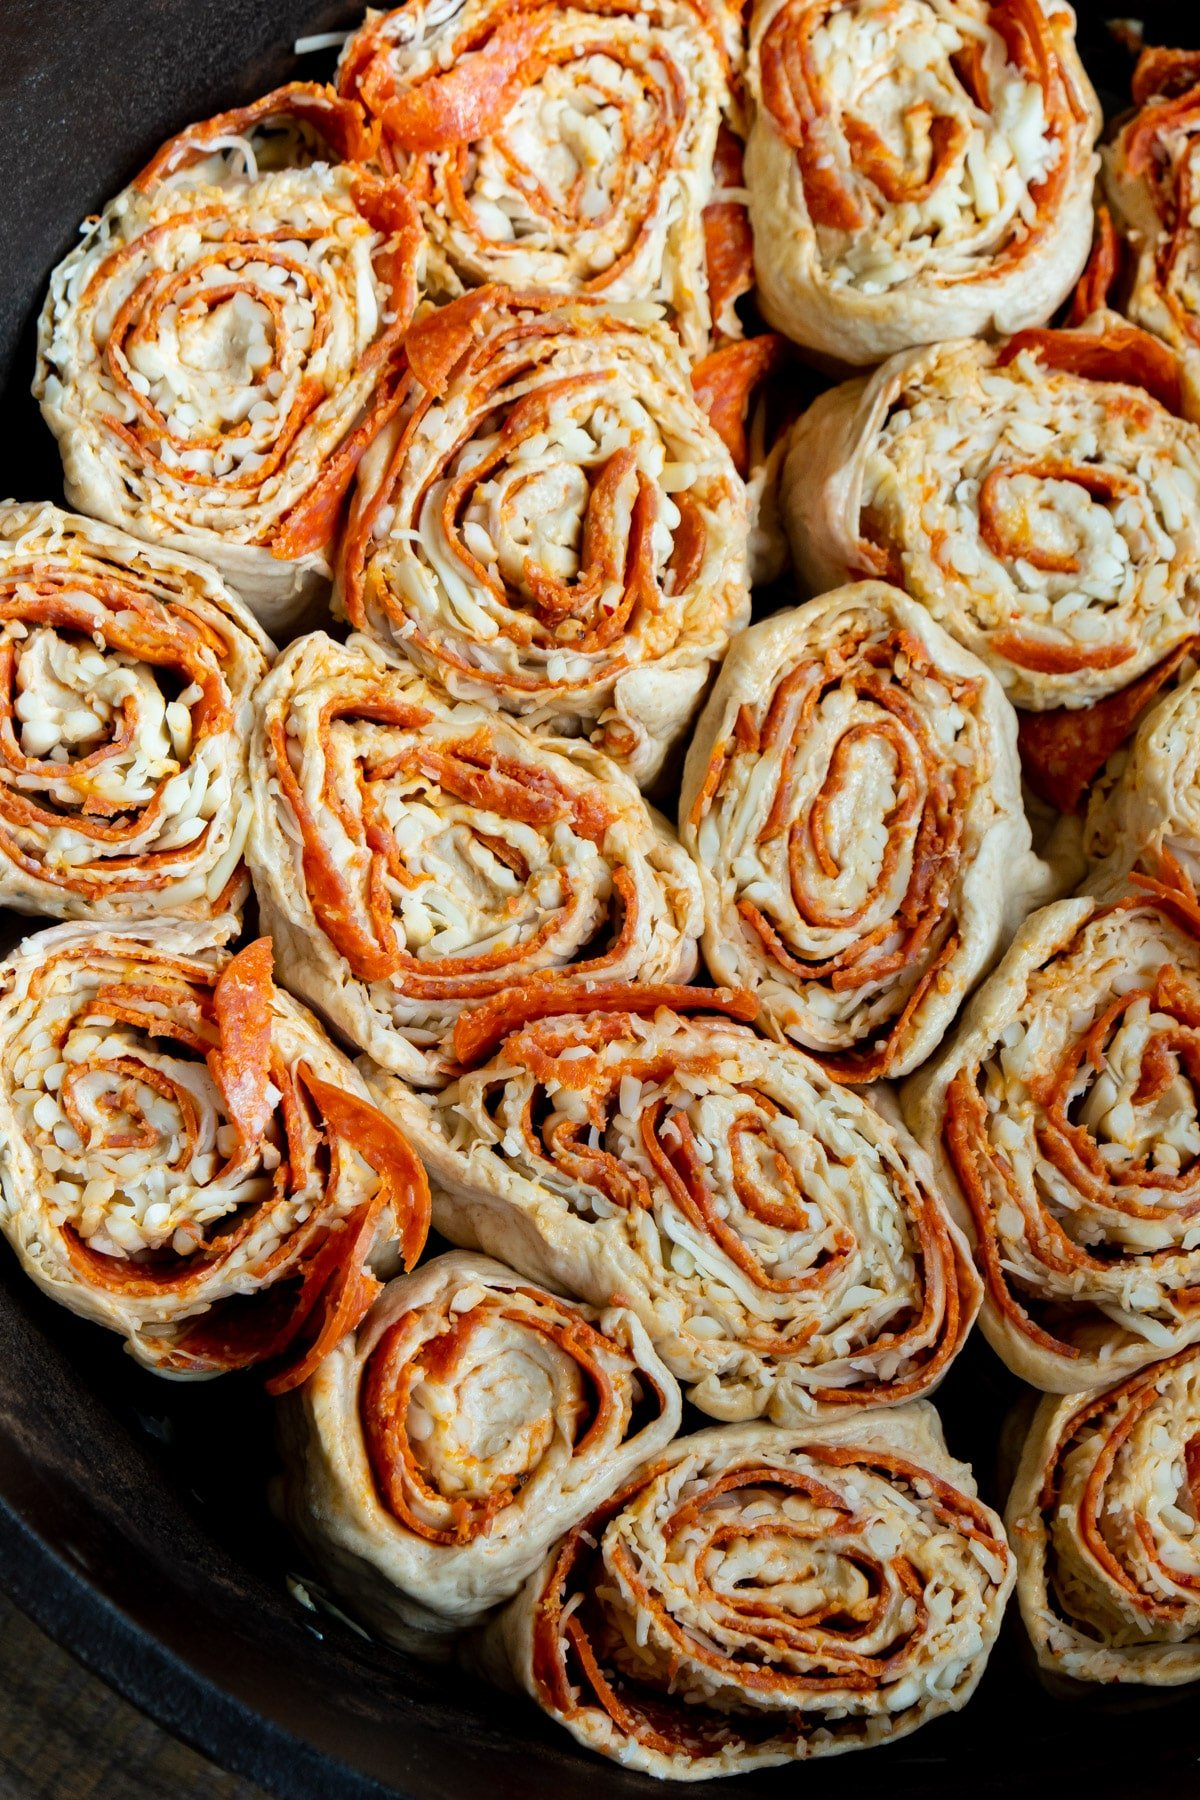 Uncooked pepperoni rolls in a dutch oven